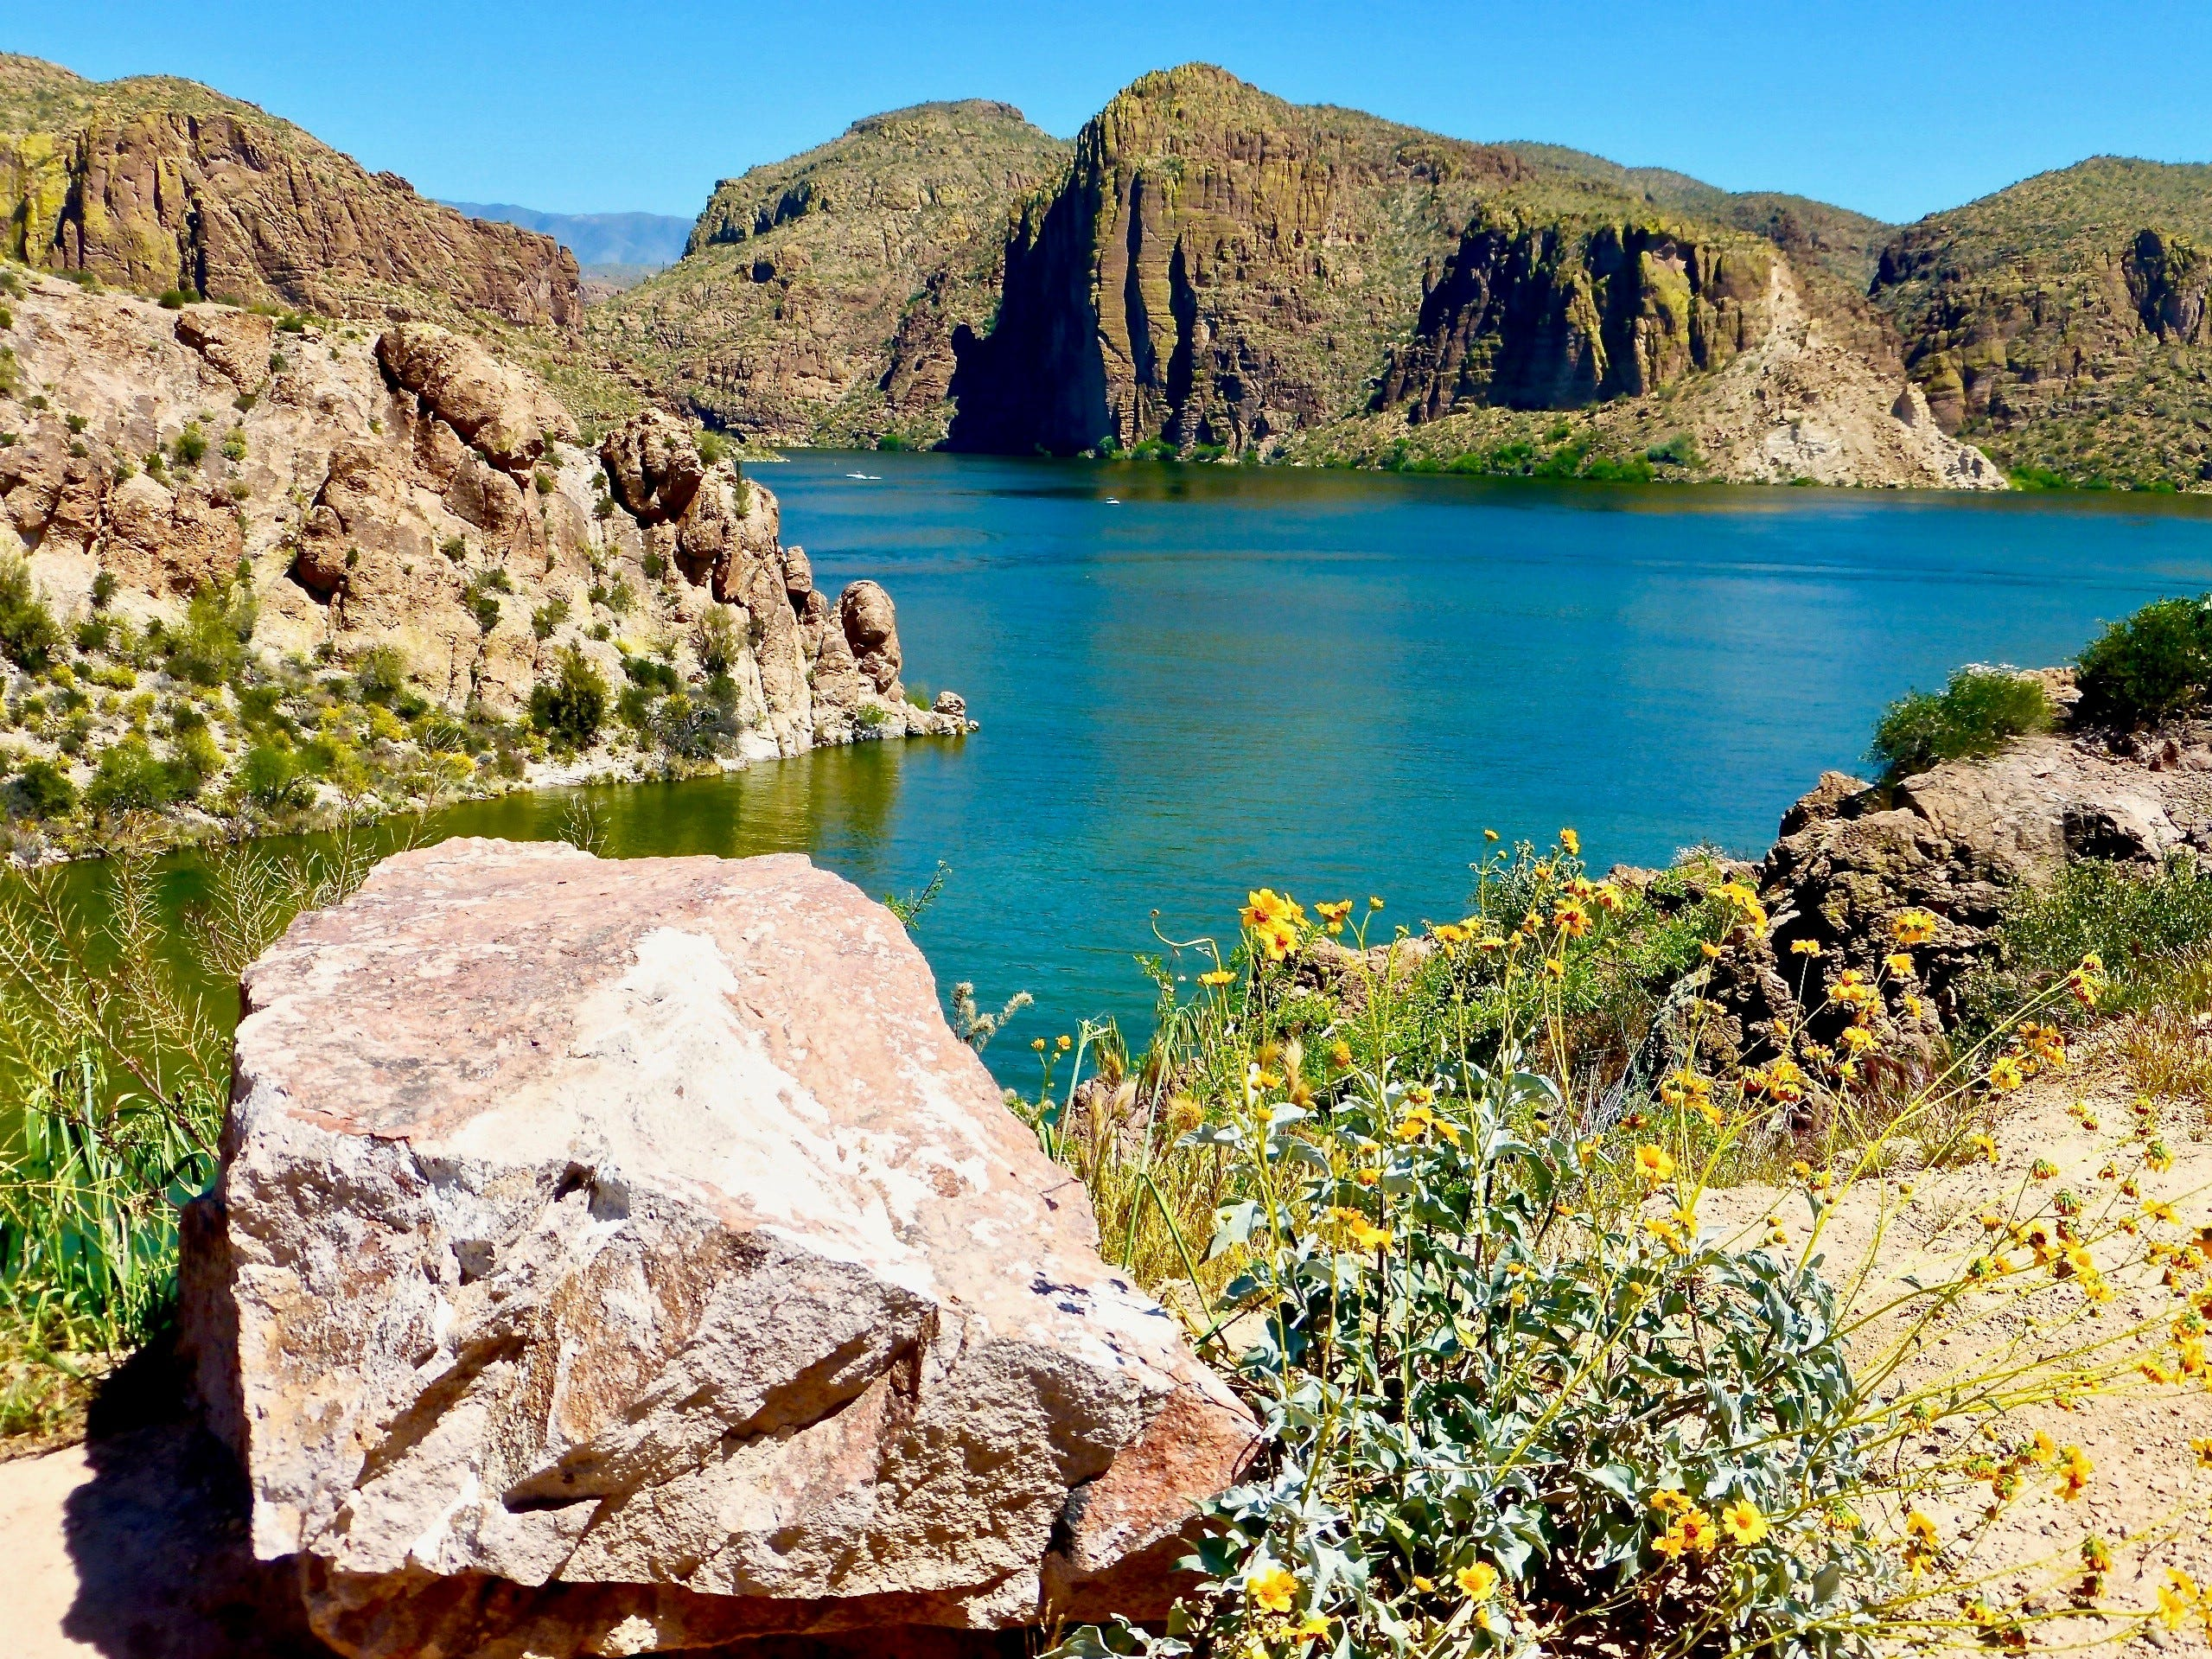 Canyon Lake, the home of Dolly Steamboat, is along the Apache Trail east of Phoenix.